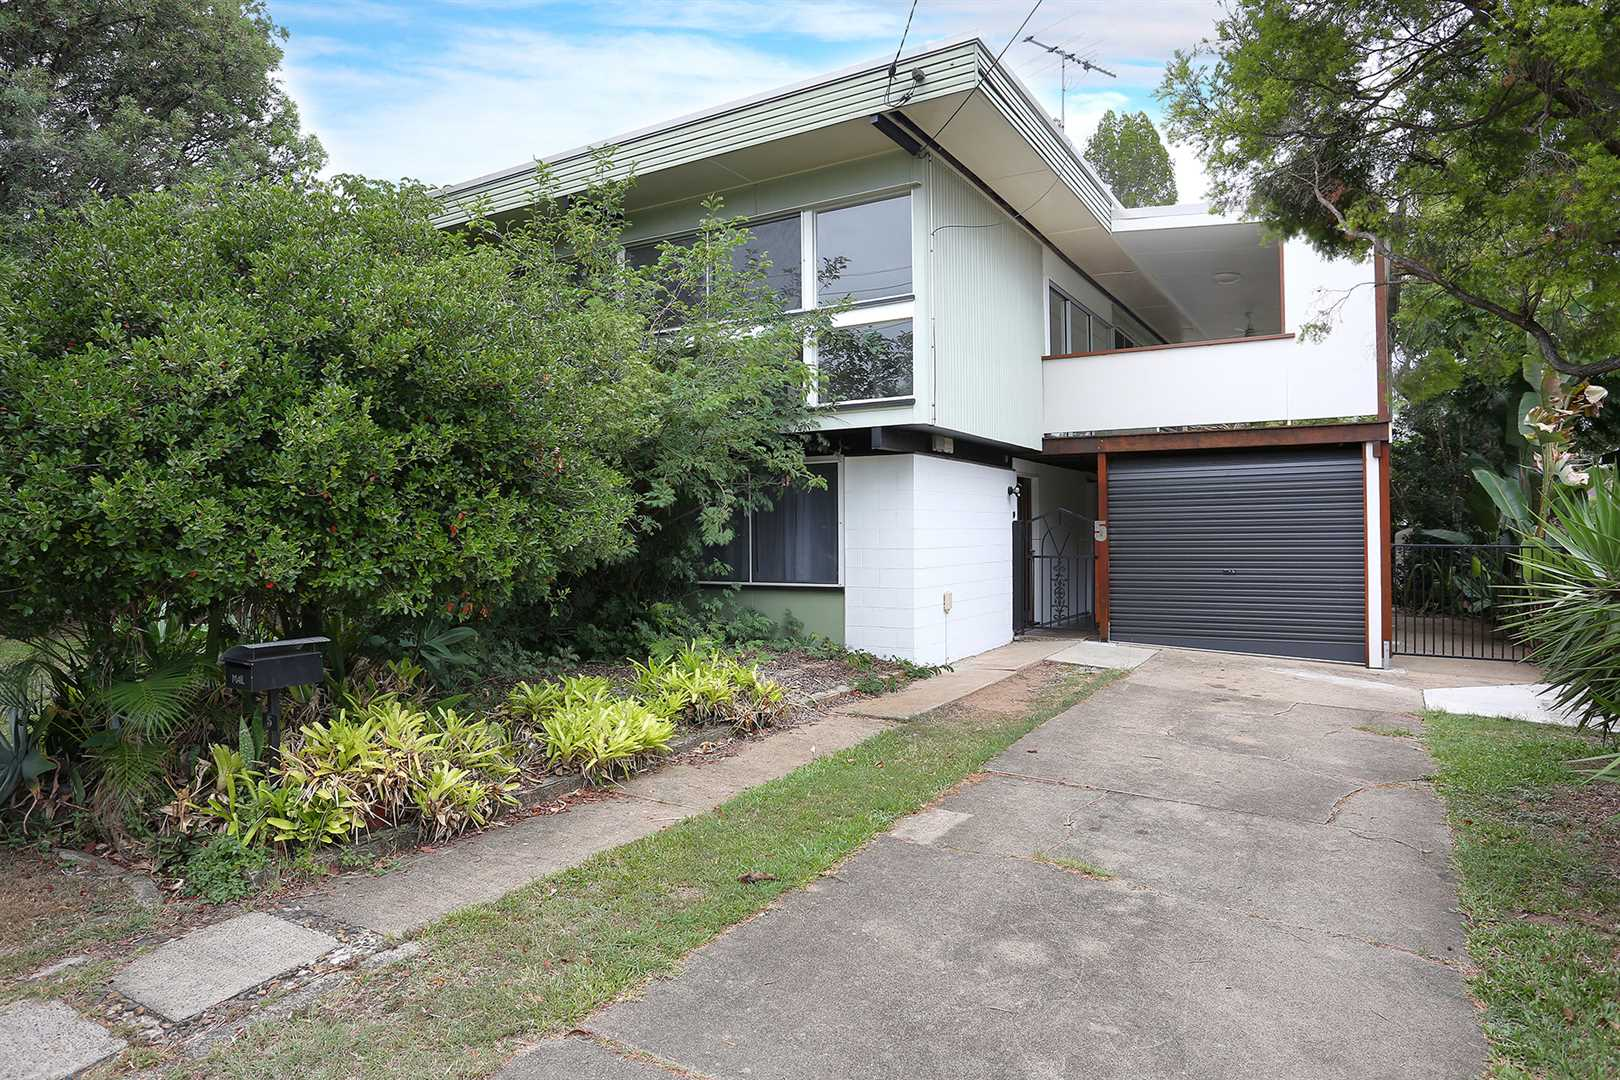 GEEBUNG - Large family home 5+ bedrooms 2 living areas